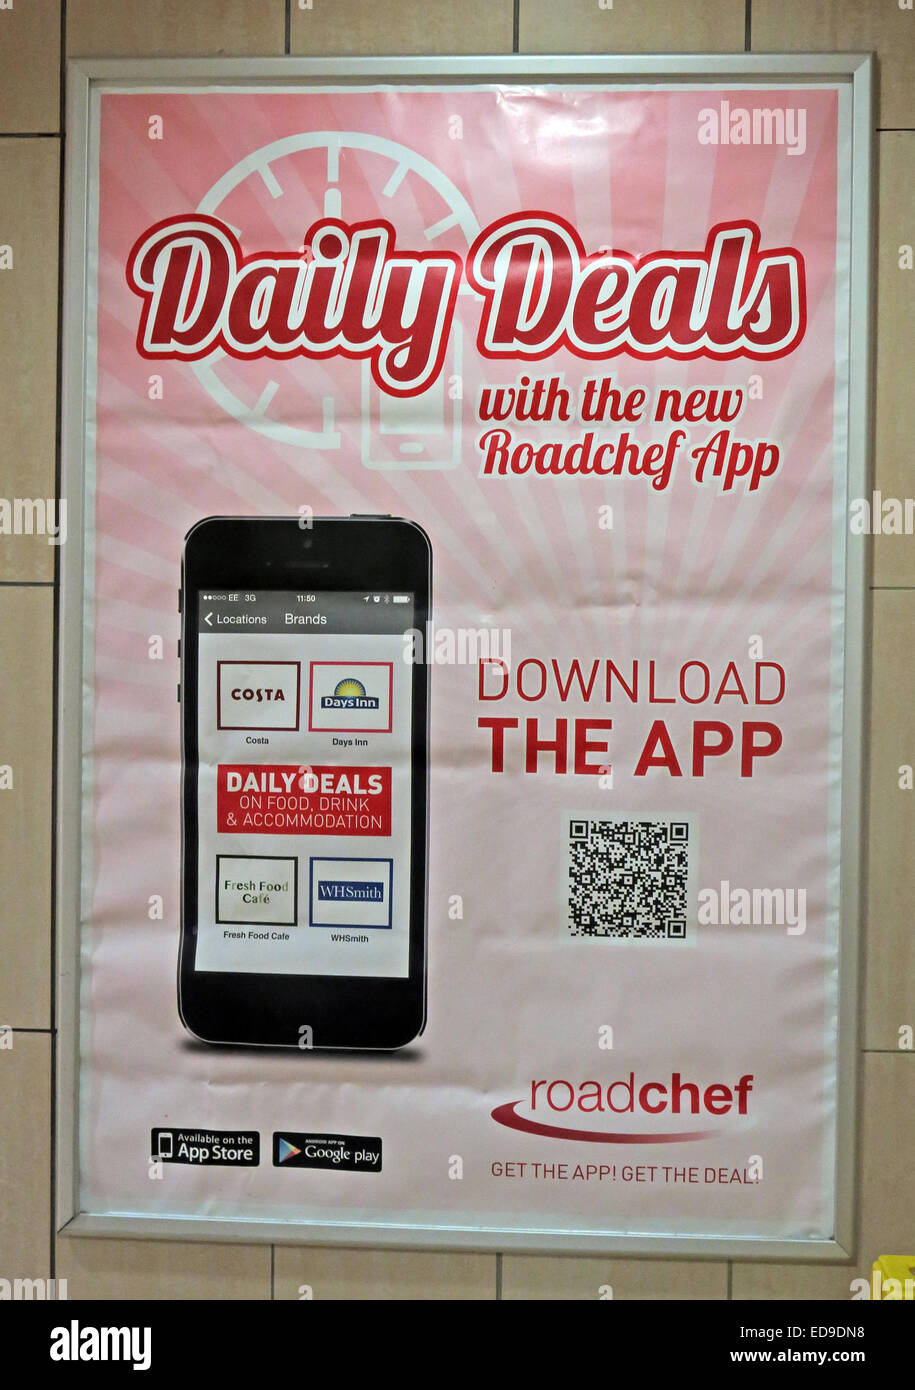 Daily Deals with the Roadchef App - Motorway Service Station, UK GB - Stock Image